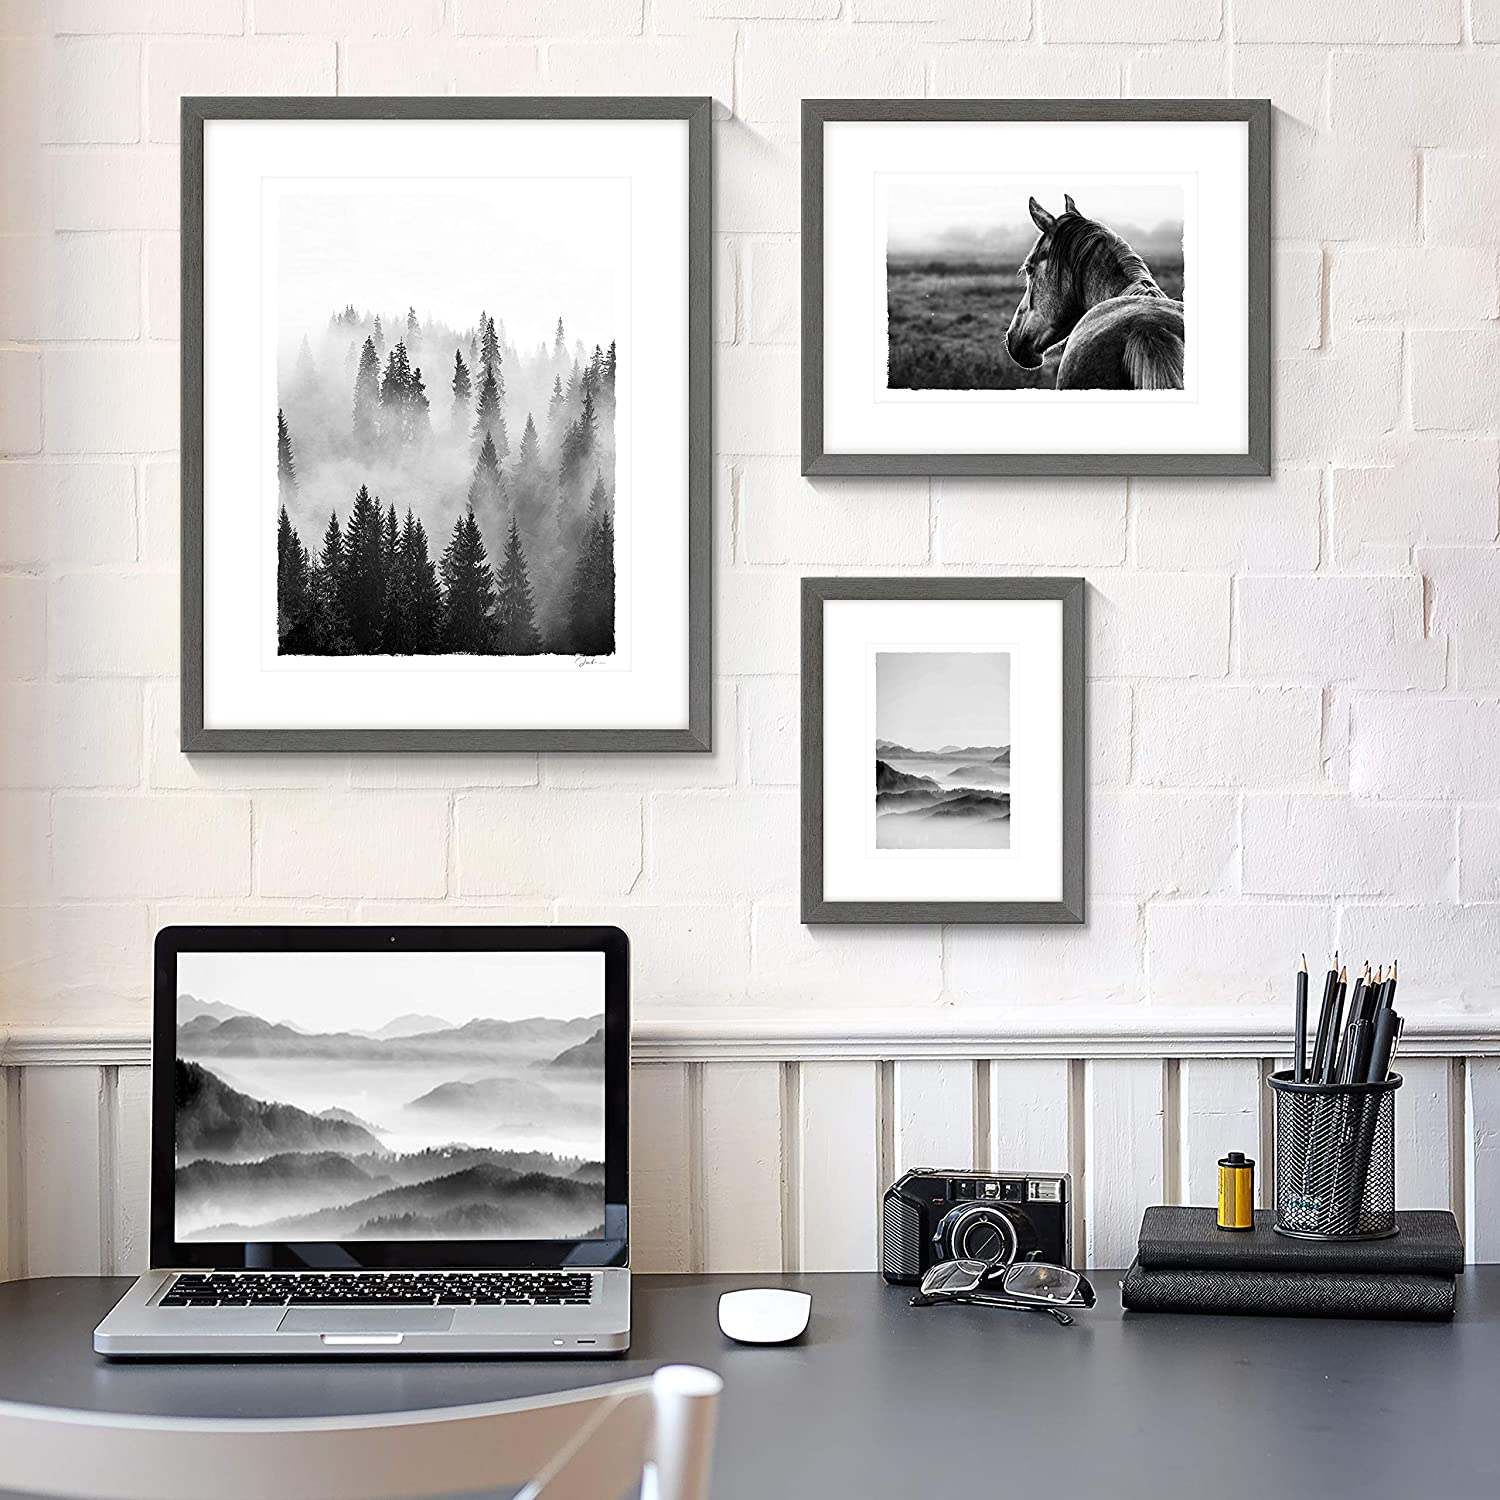 Nature View Pictures Prints Framed - Mysterious Foggy Scenery Photography Black and White Wall Art with Wooden Frame for Bathroom, Living Room, Bedroom, Office 3 Panels